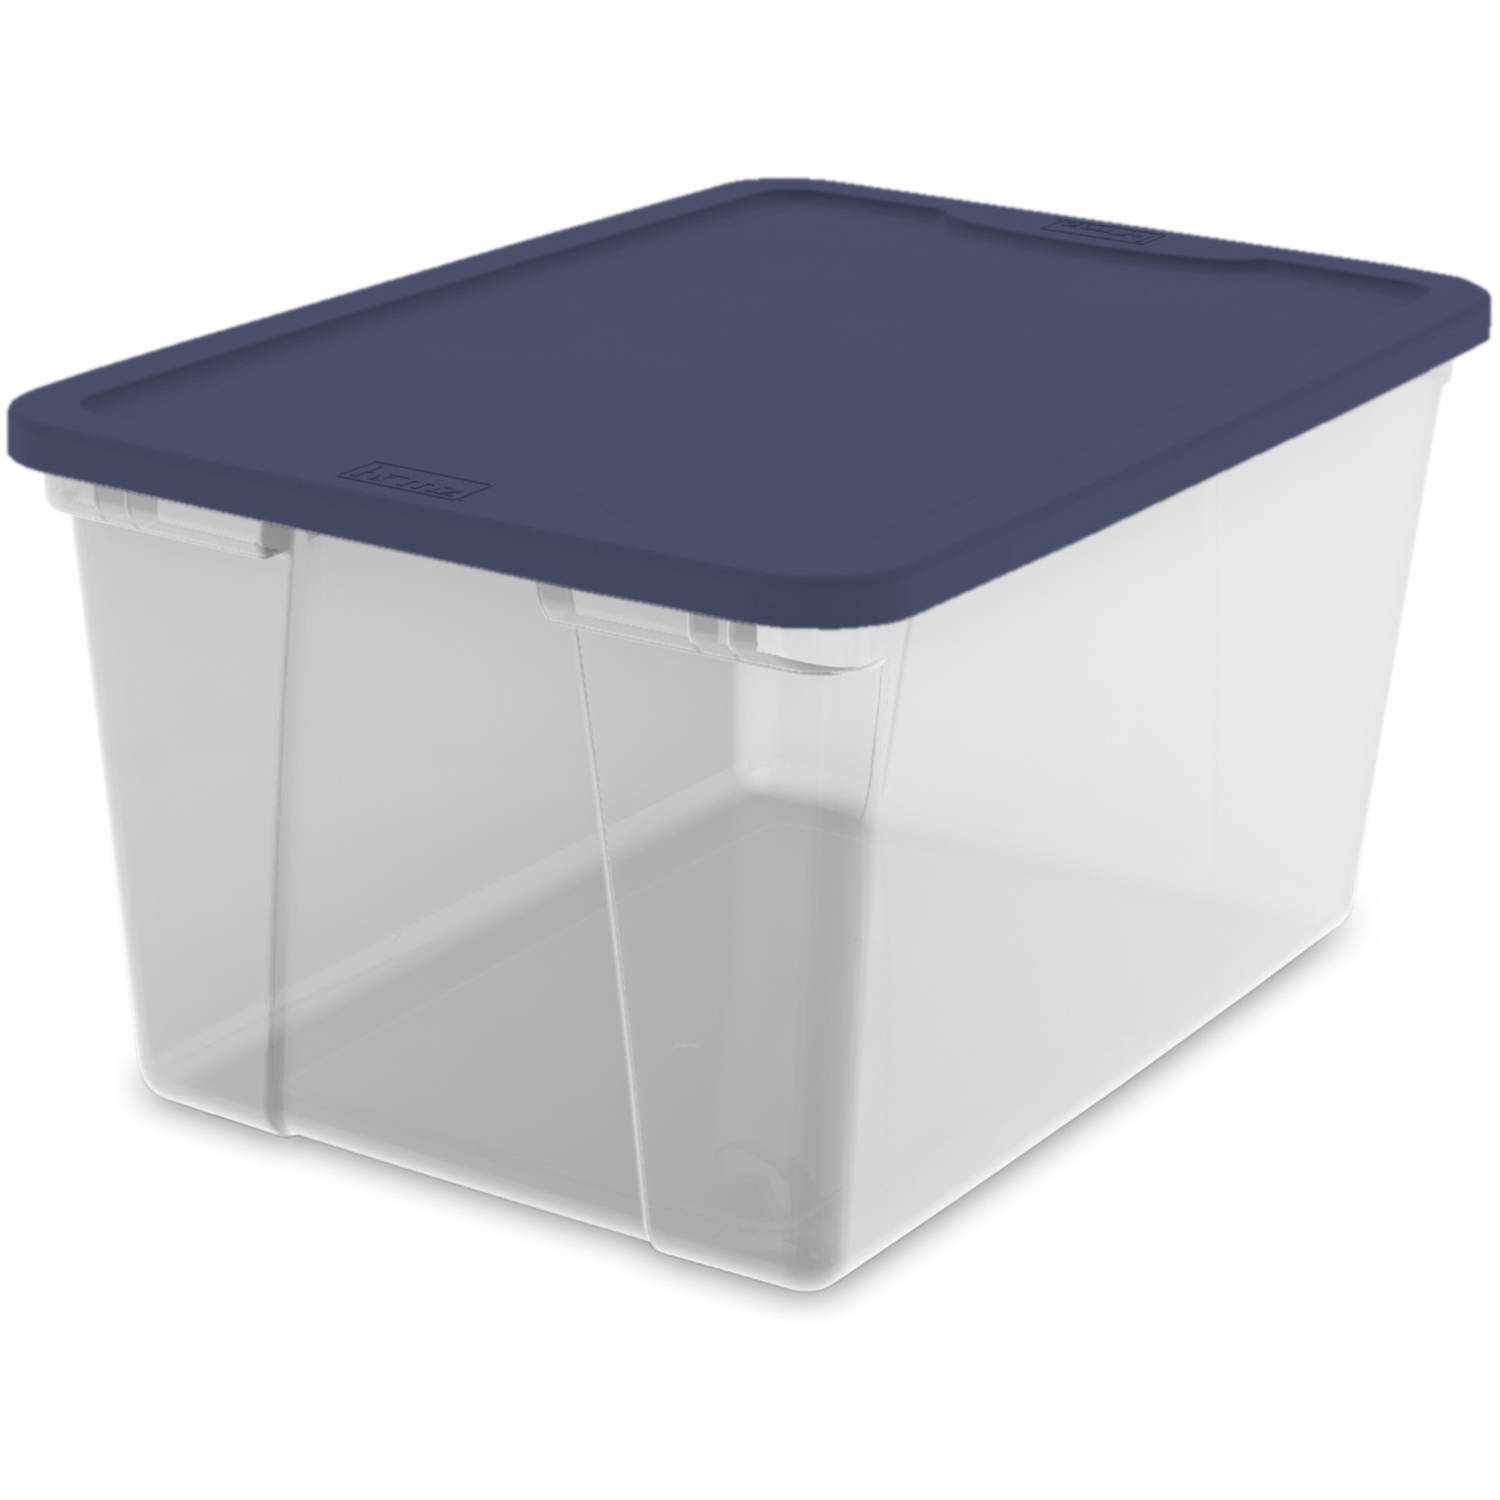 Homz 56 Qt Clear Storage with Cobalt Blue Lid, Set of 8